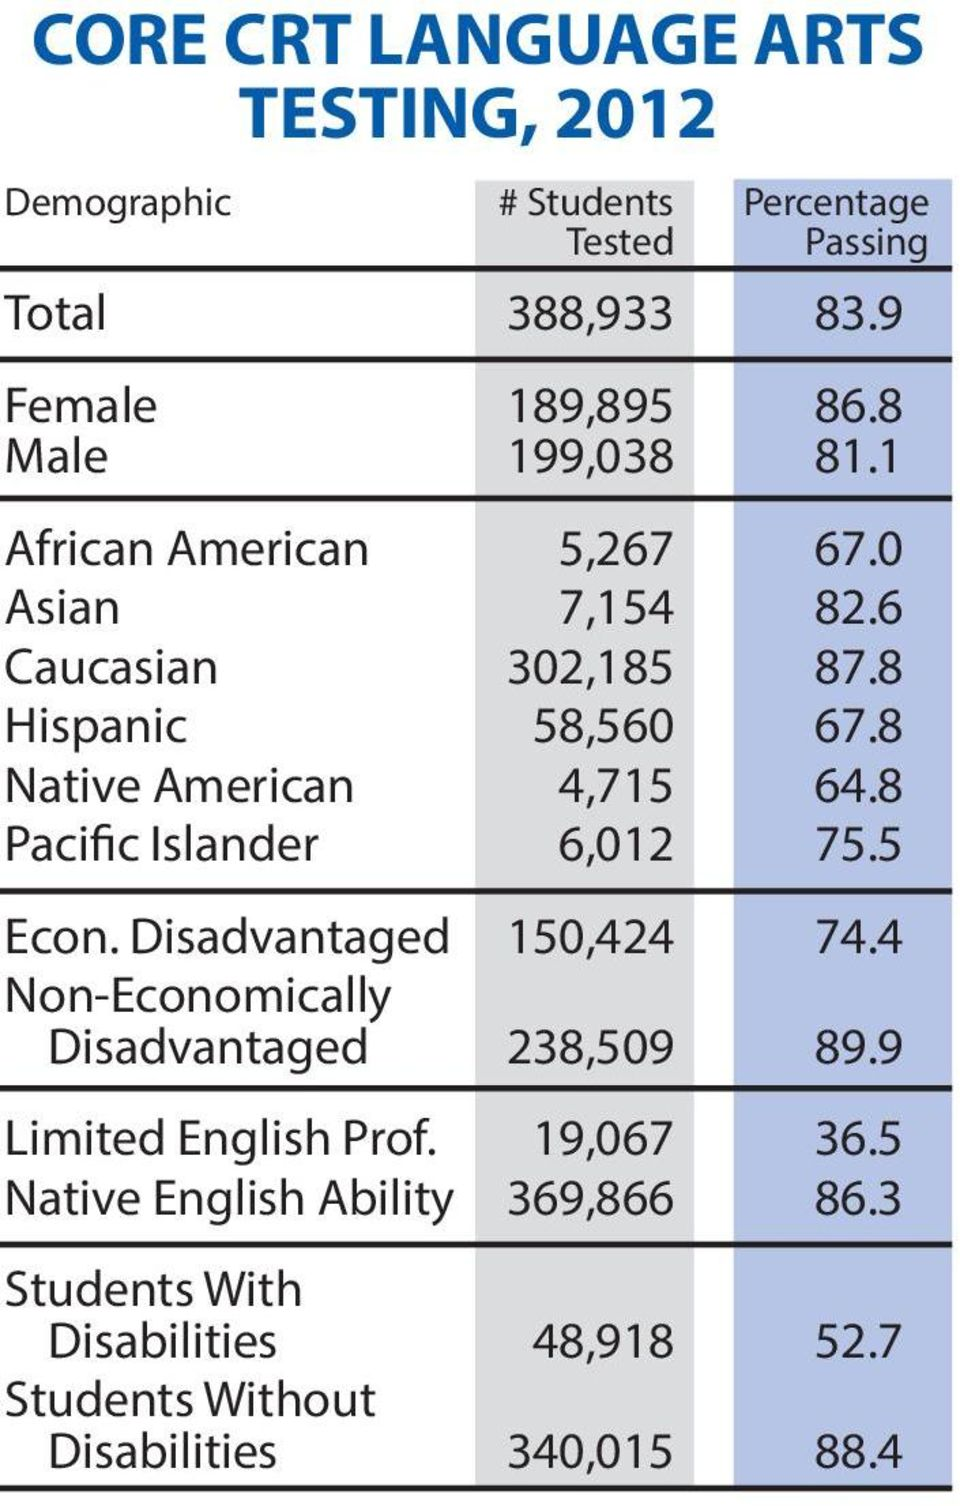 8 Native American 4,715 64.8 Pacific Islander 6,012 75.5 Econ. Disadvantaged 150,424 74.